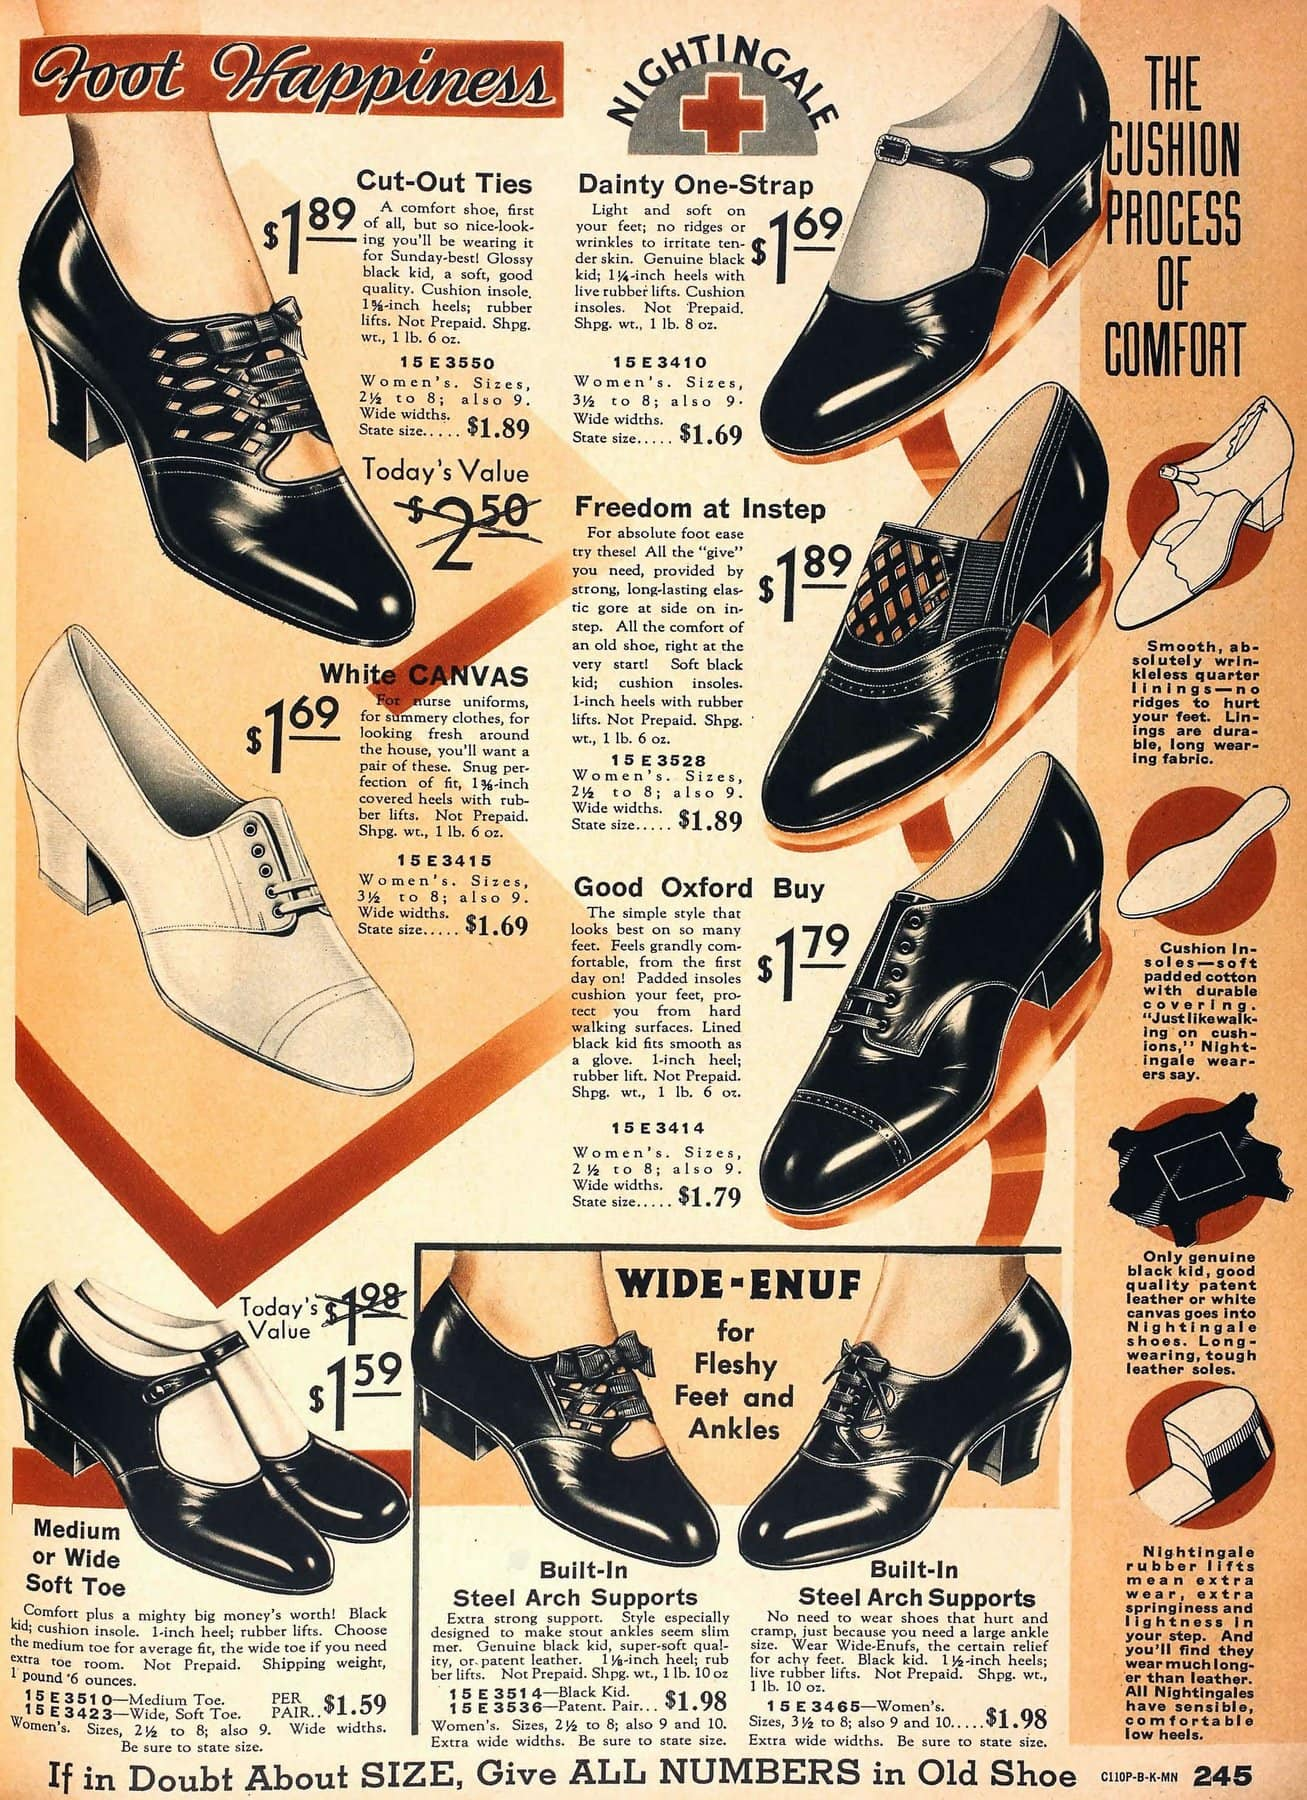 Vintage 30s shoes for women - Retro footwear fashion from 1934 (2)